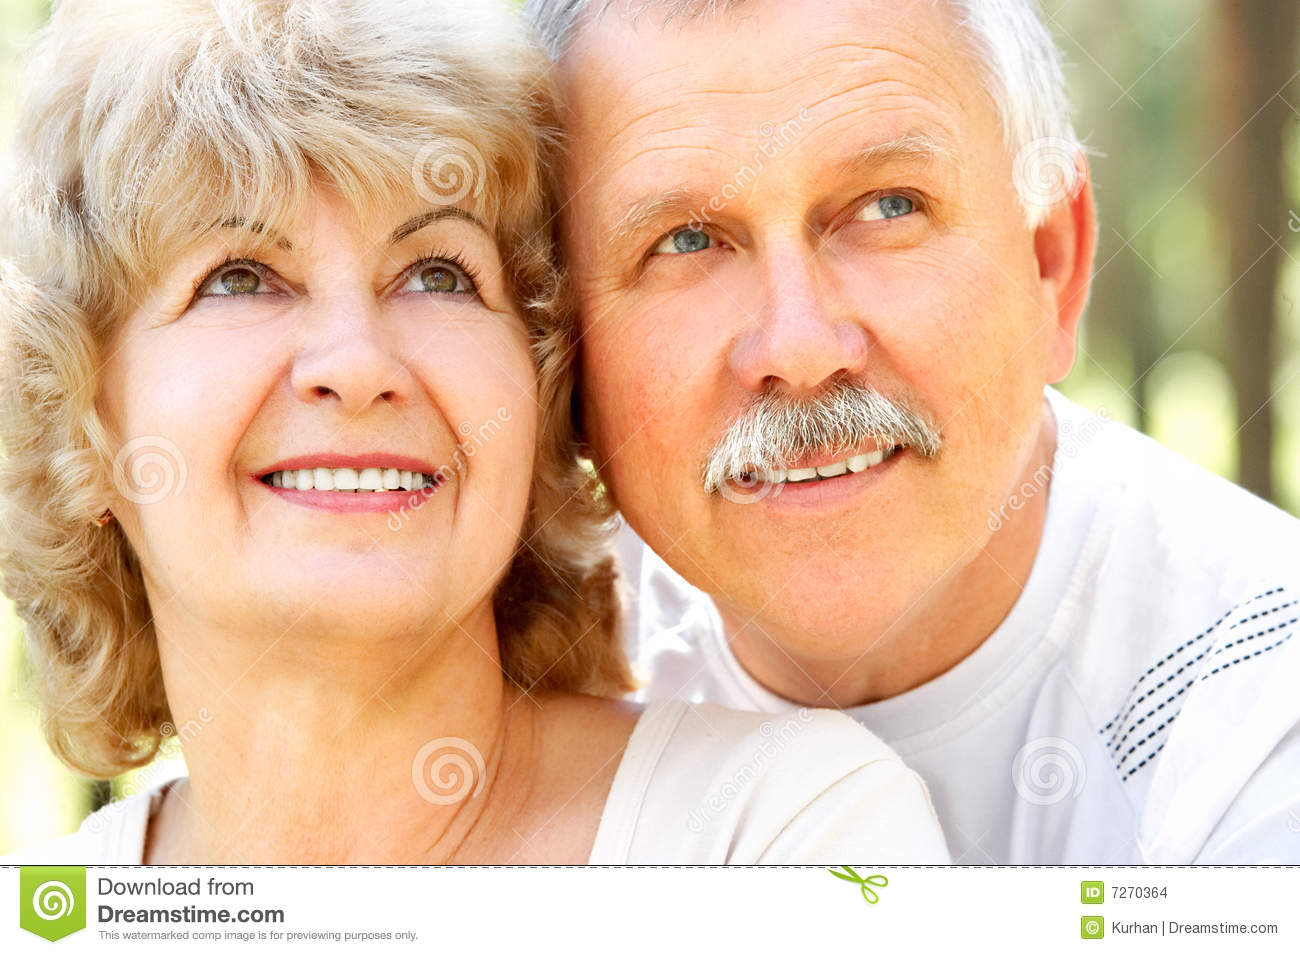 Smiling happy elderly couple in love outdoor Happy Elderly Couple